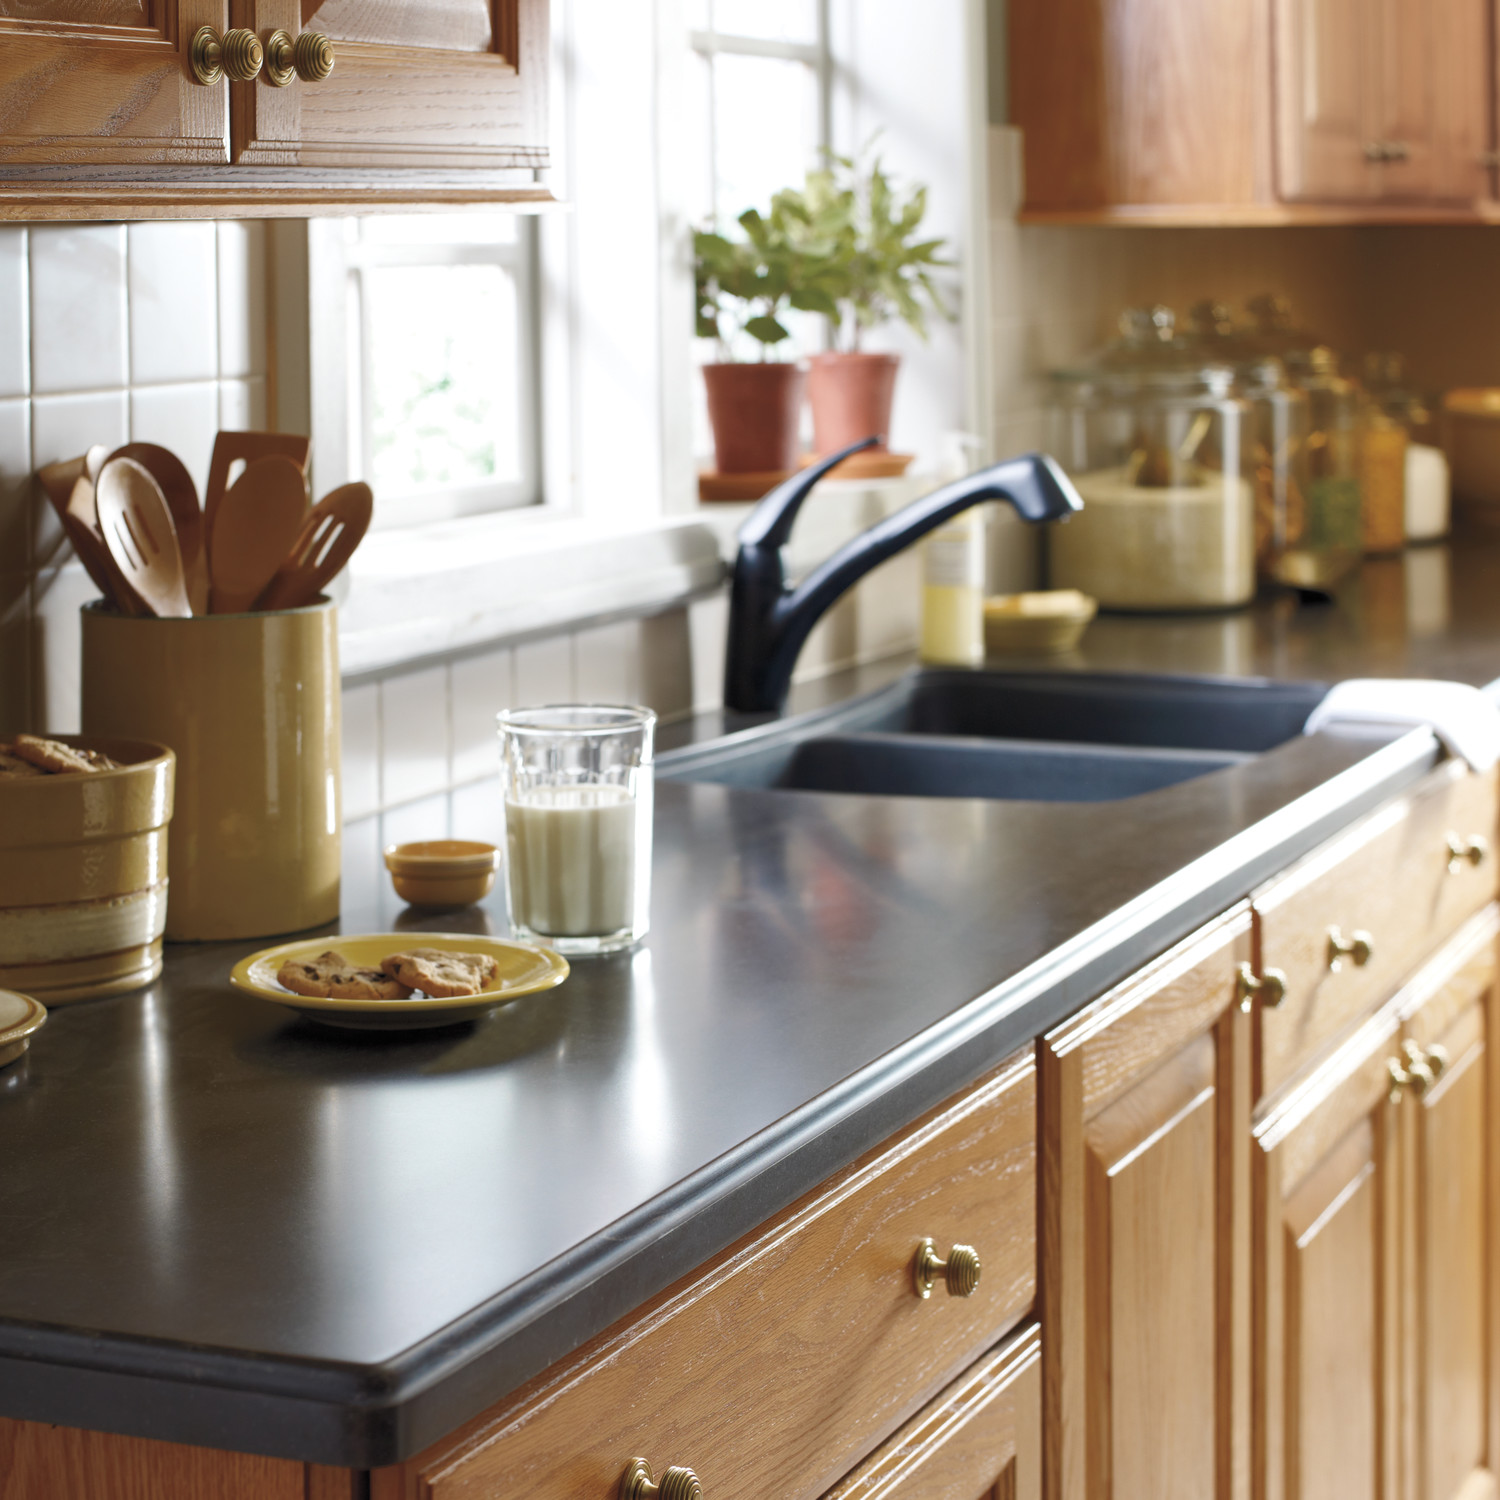 Do You Need A Kitchen Designer: Choosing A Kitchen Sink: 15 Things You Need To Know